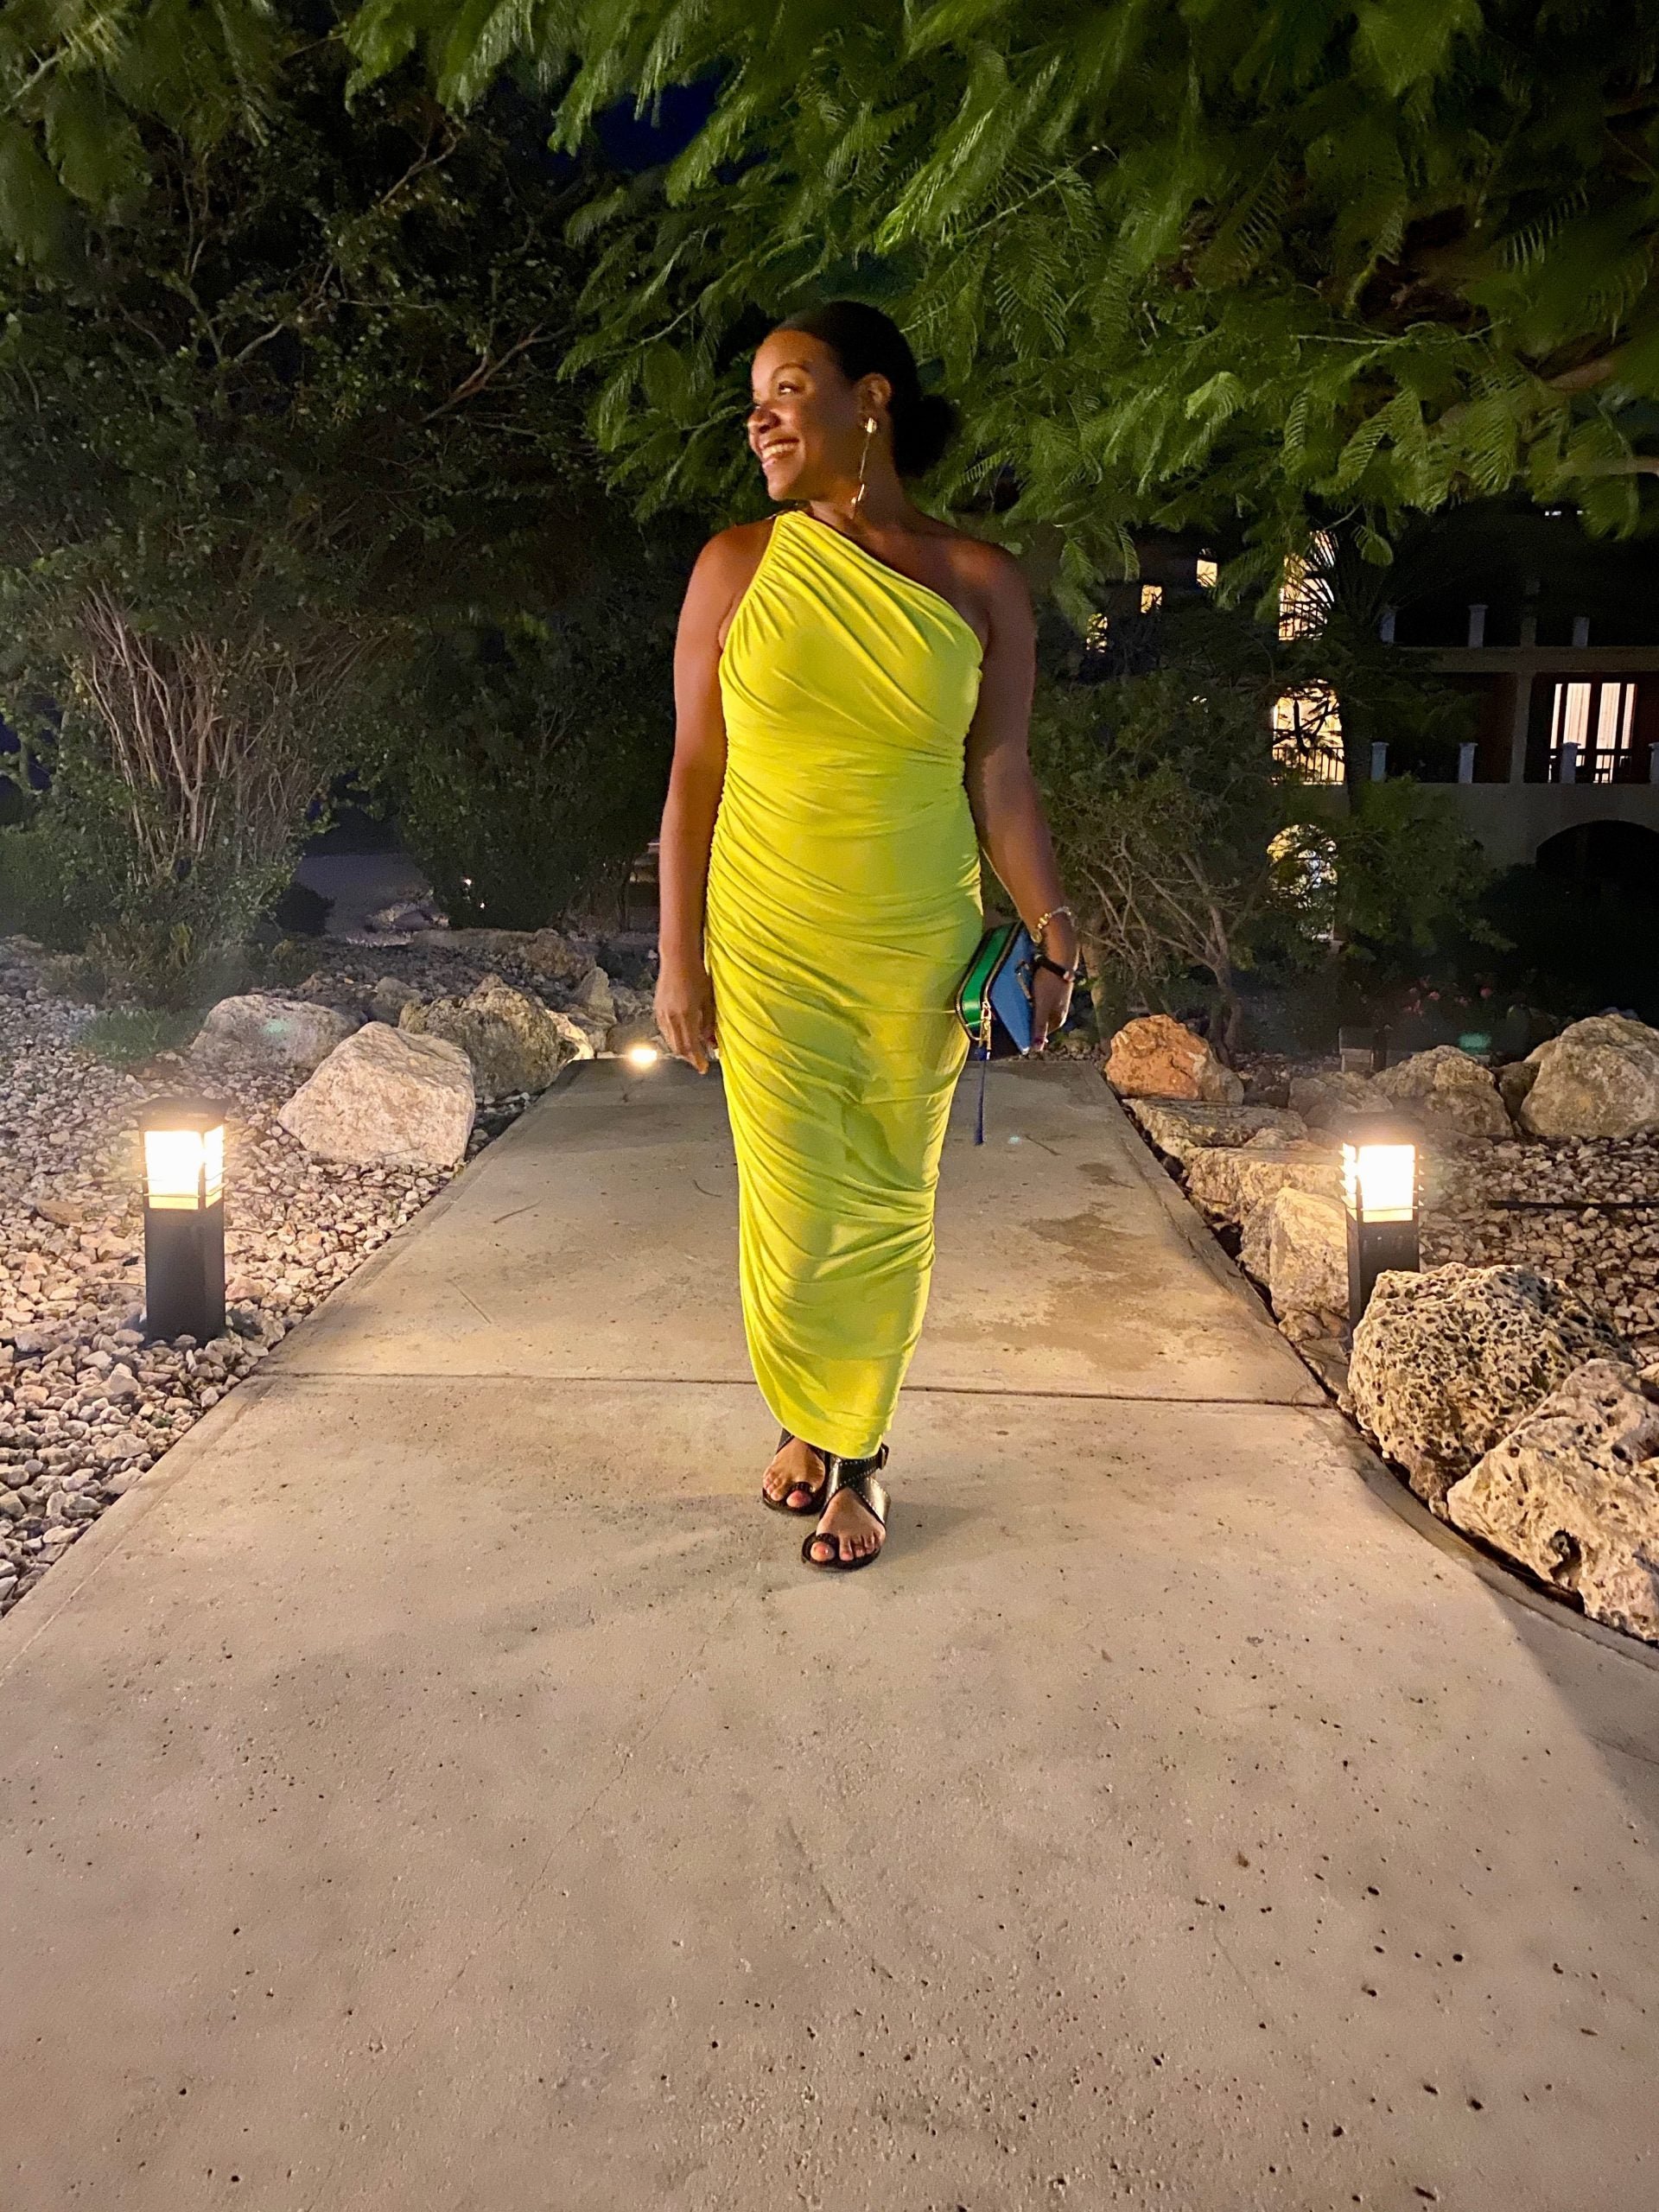 Travel expert in Curacao